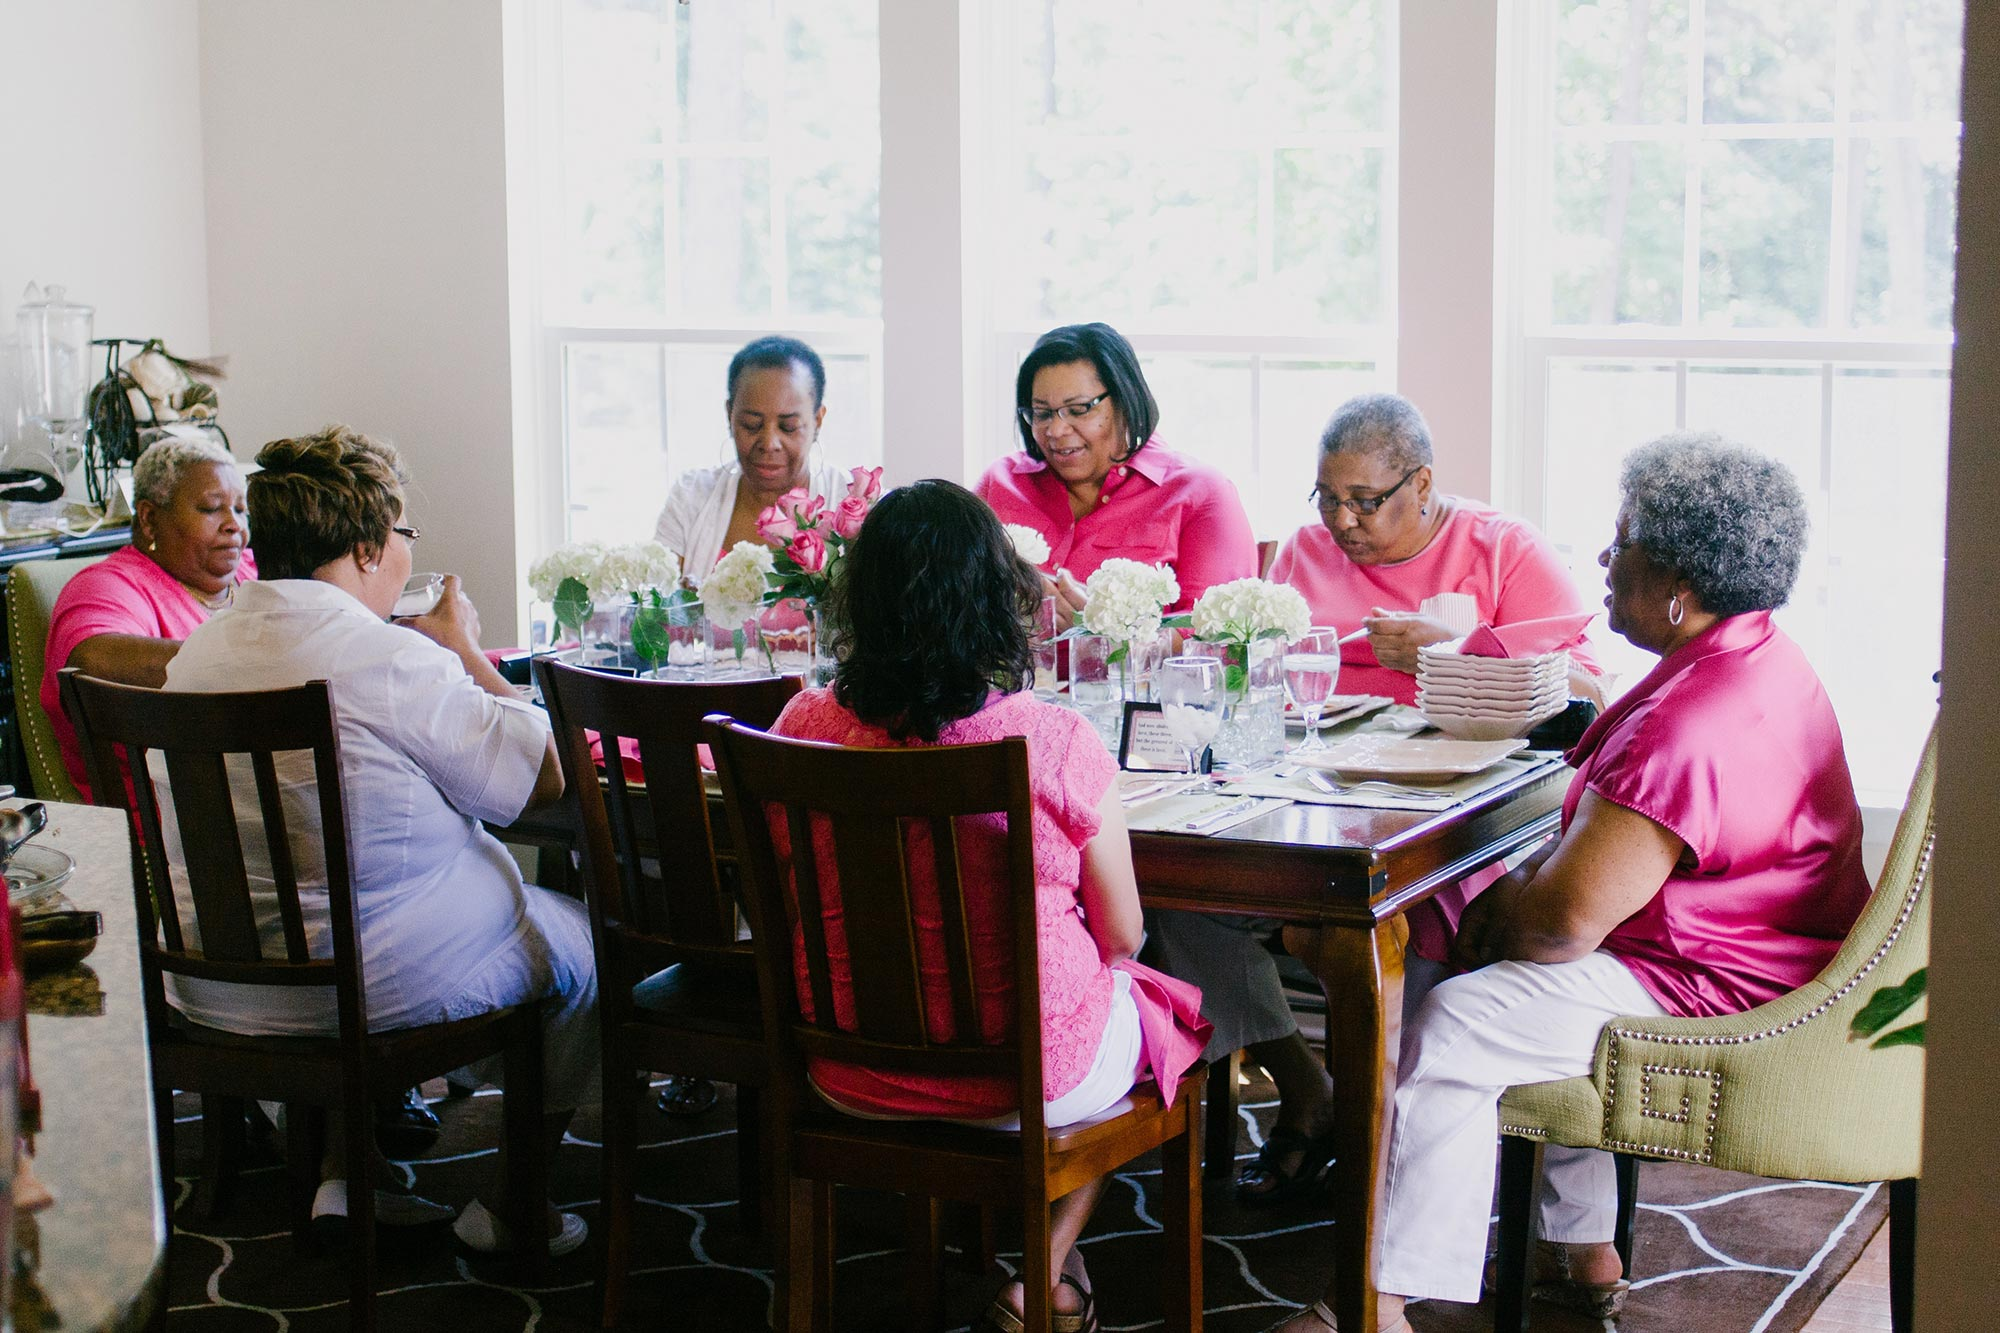 friends and family members gather around a table for lunch richmond virginia hidden expsure photography